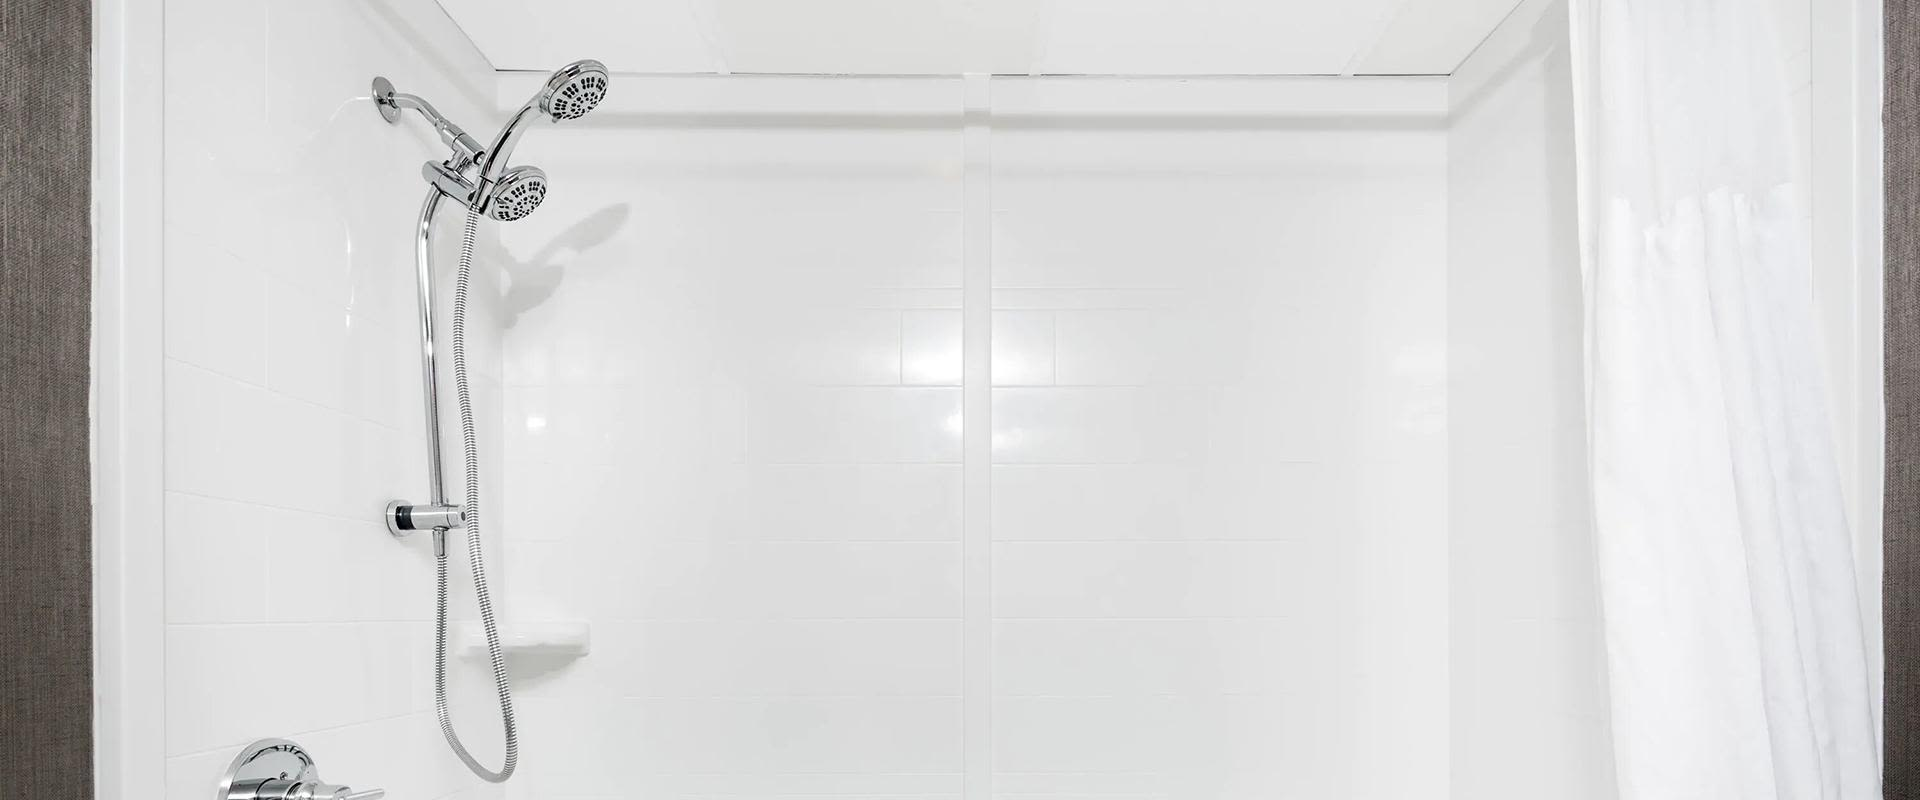 White tub and shower